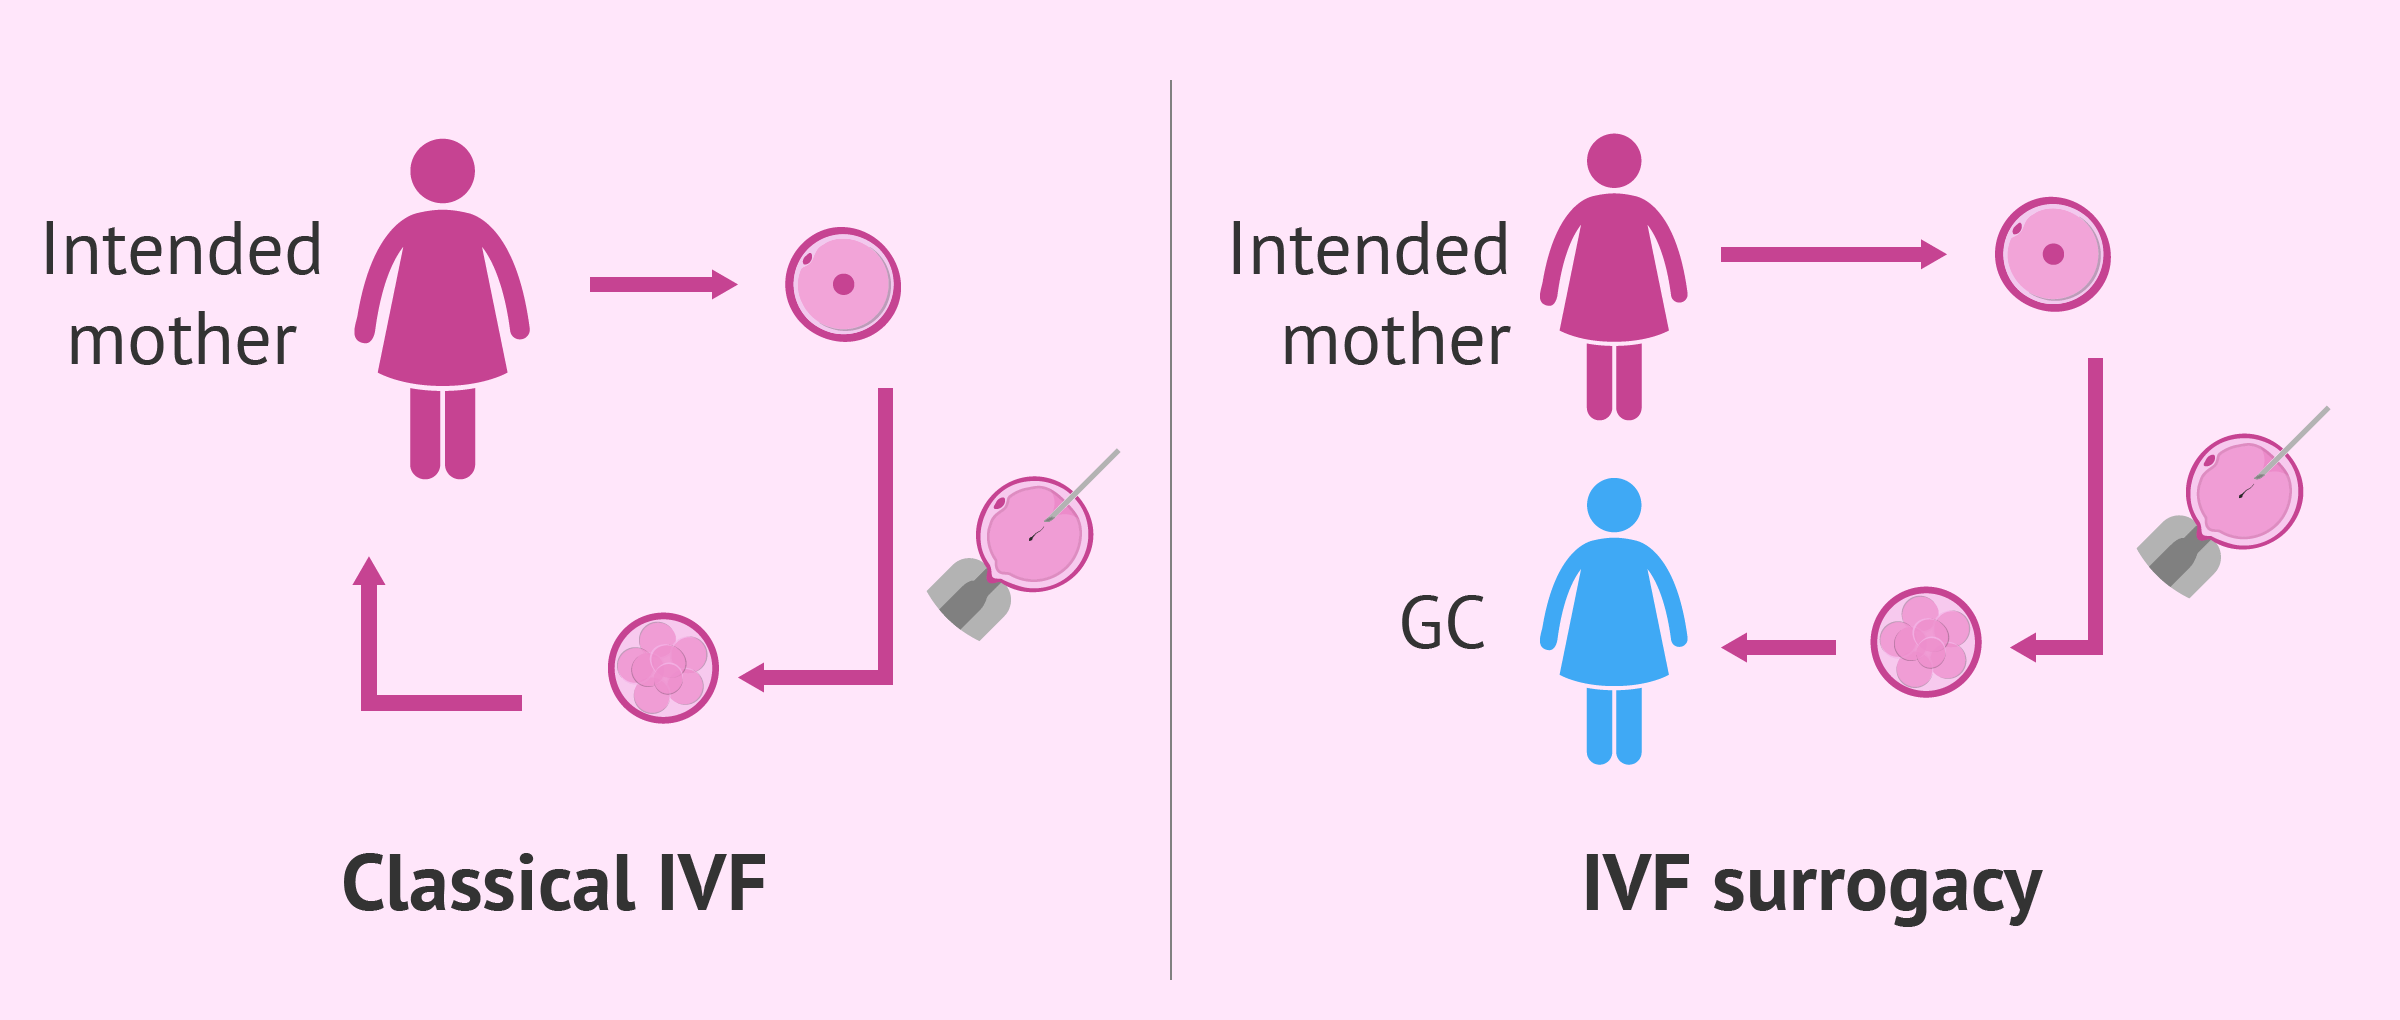 What Is IVF Surrogacy? - Process, Success Rates & Cost